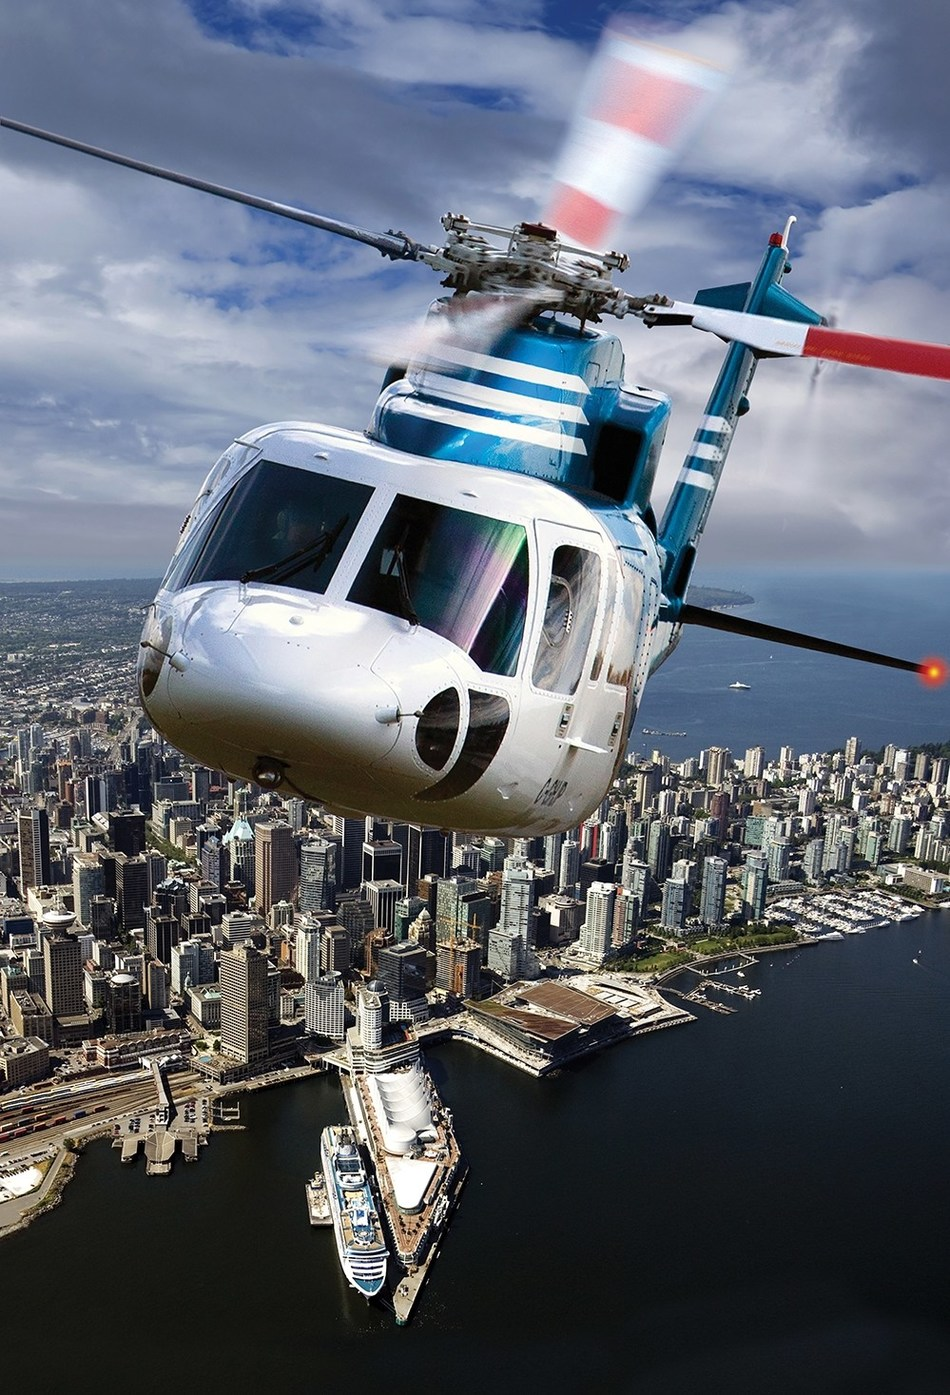 Helijet International has provided 30 years of safe scheduled airline and charter operations with Sikorsky S-76 helicopters. Helijet's fleet of 11 Sikorsky S-76 helicopters primarily performs scheduled passenger transport, air medical services and corporate charter services